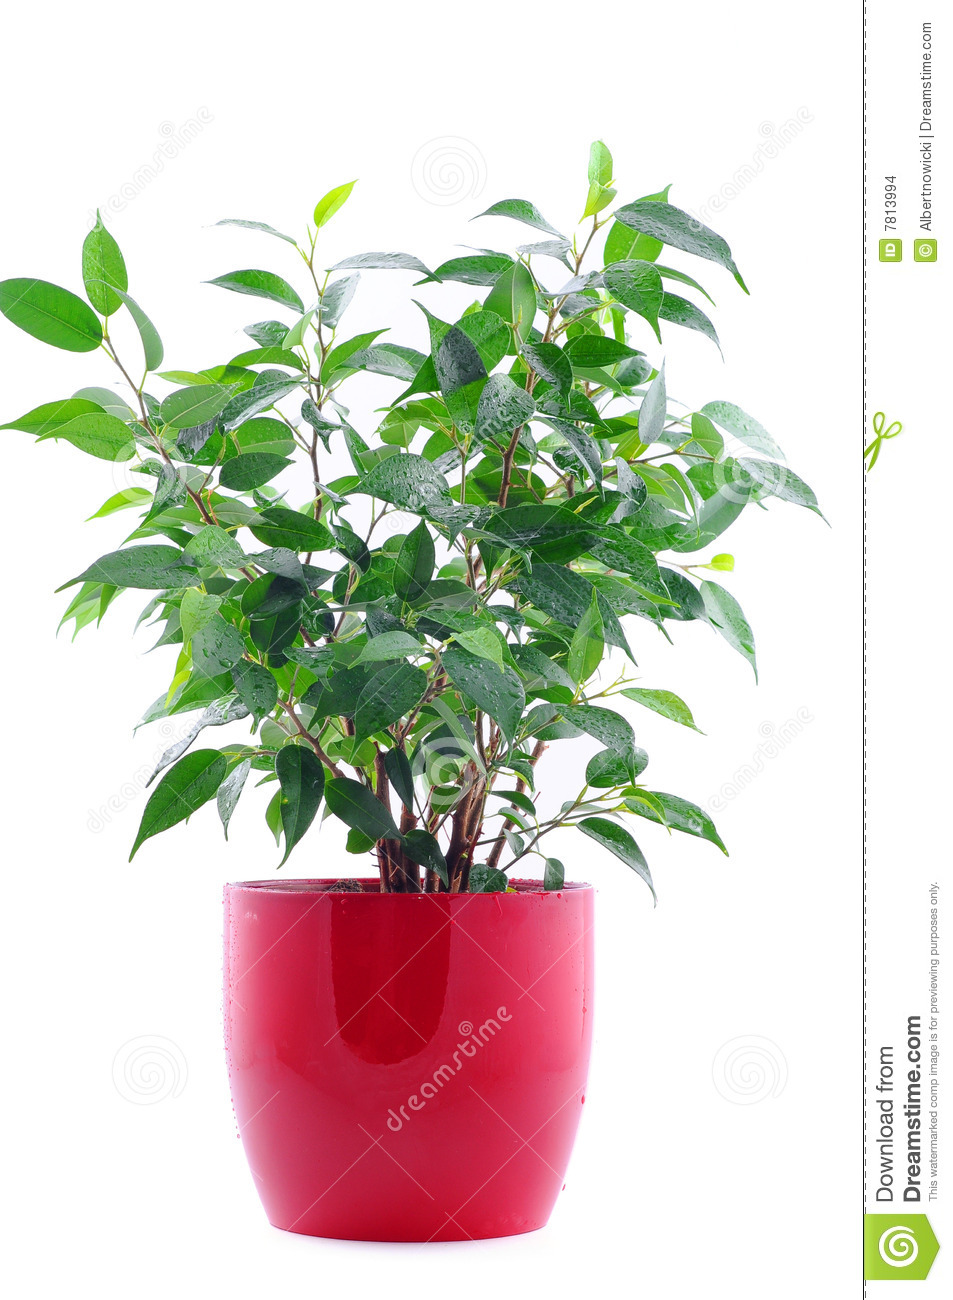 Green Plant In Red Pot Isolated On White Stock Images